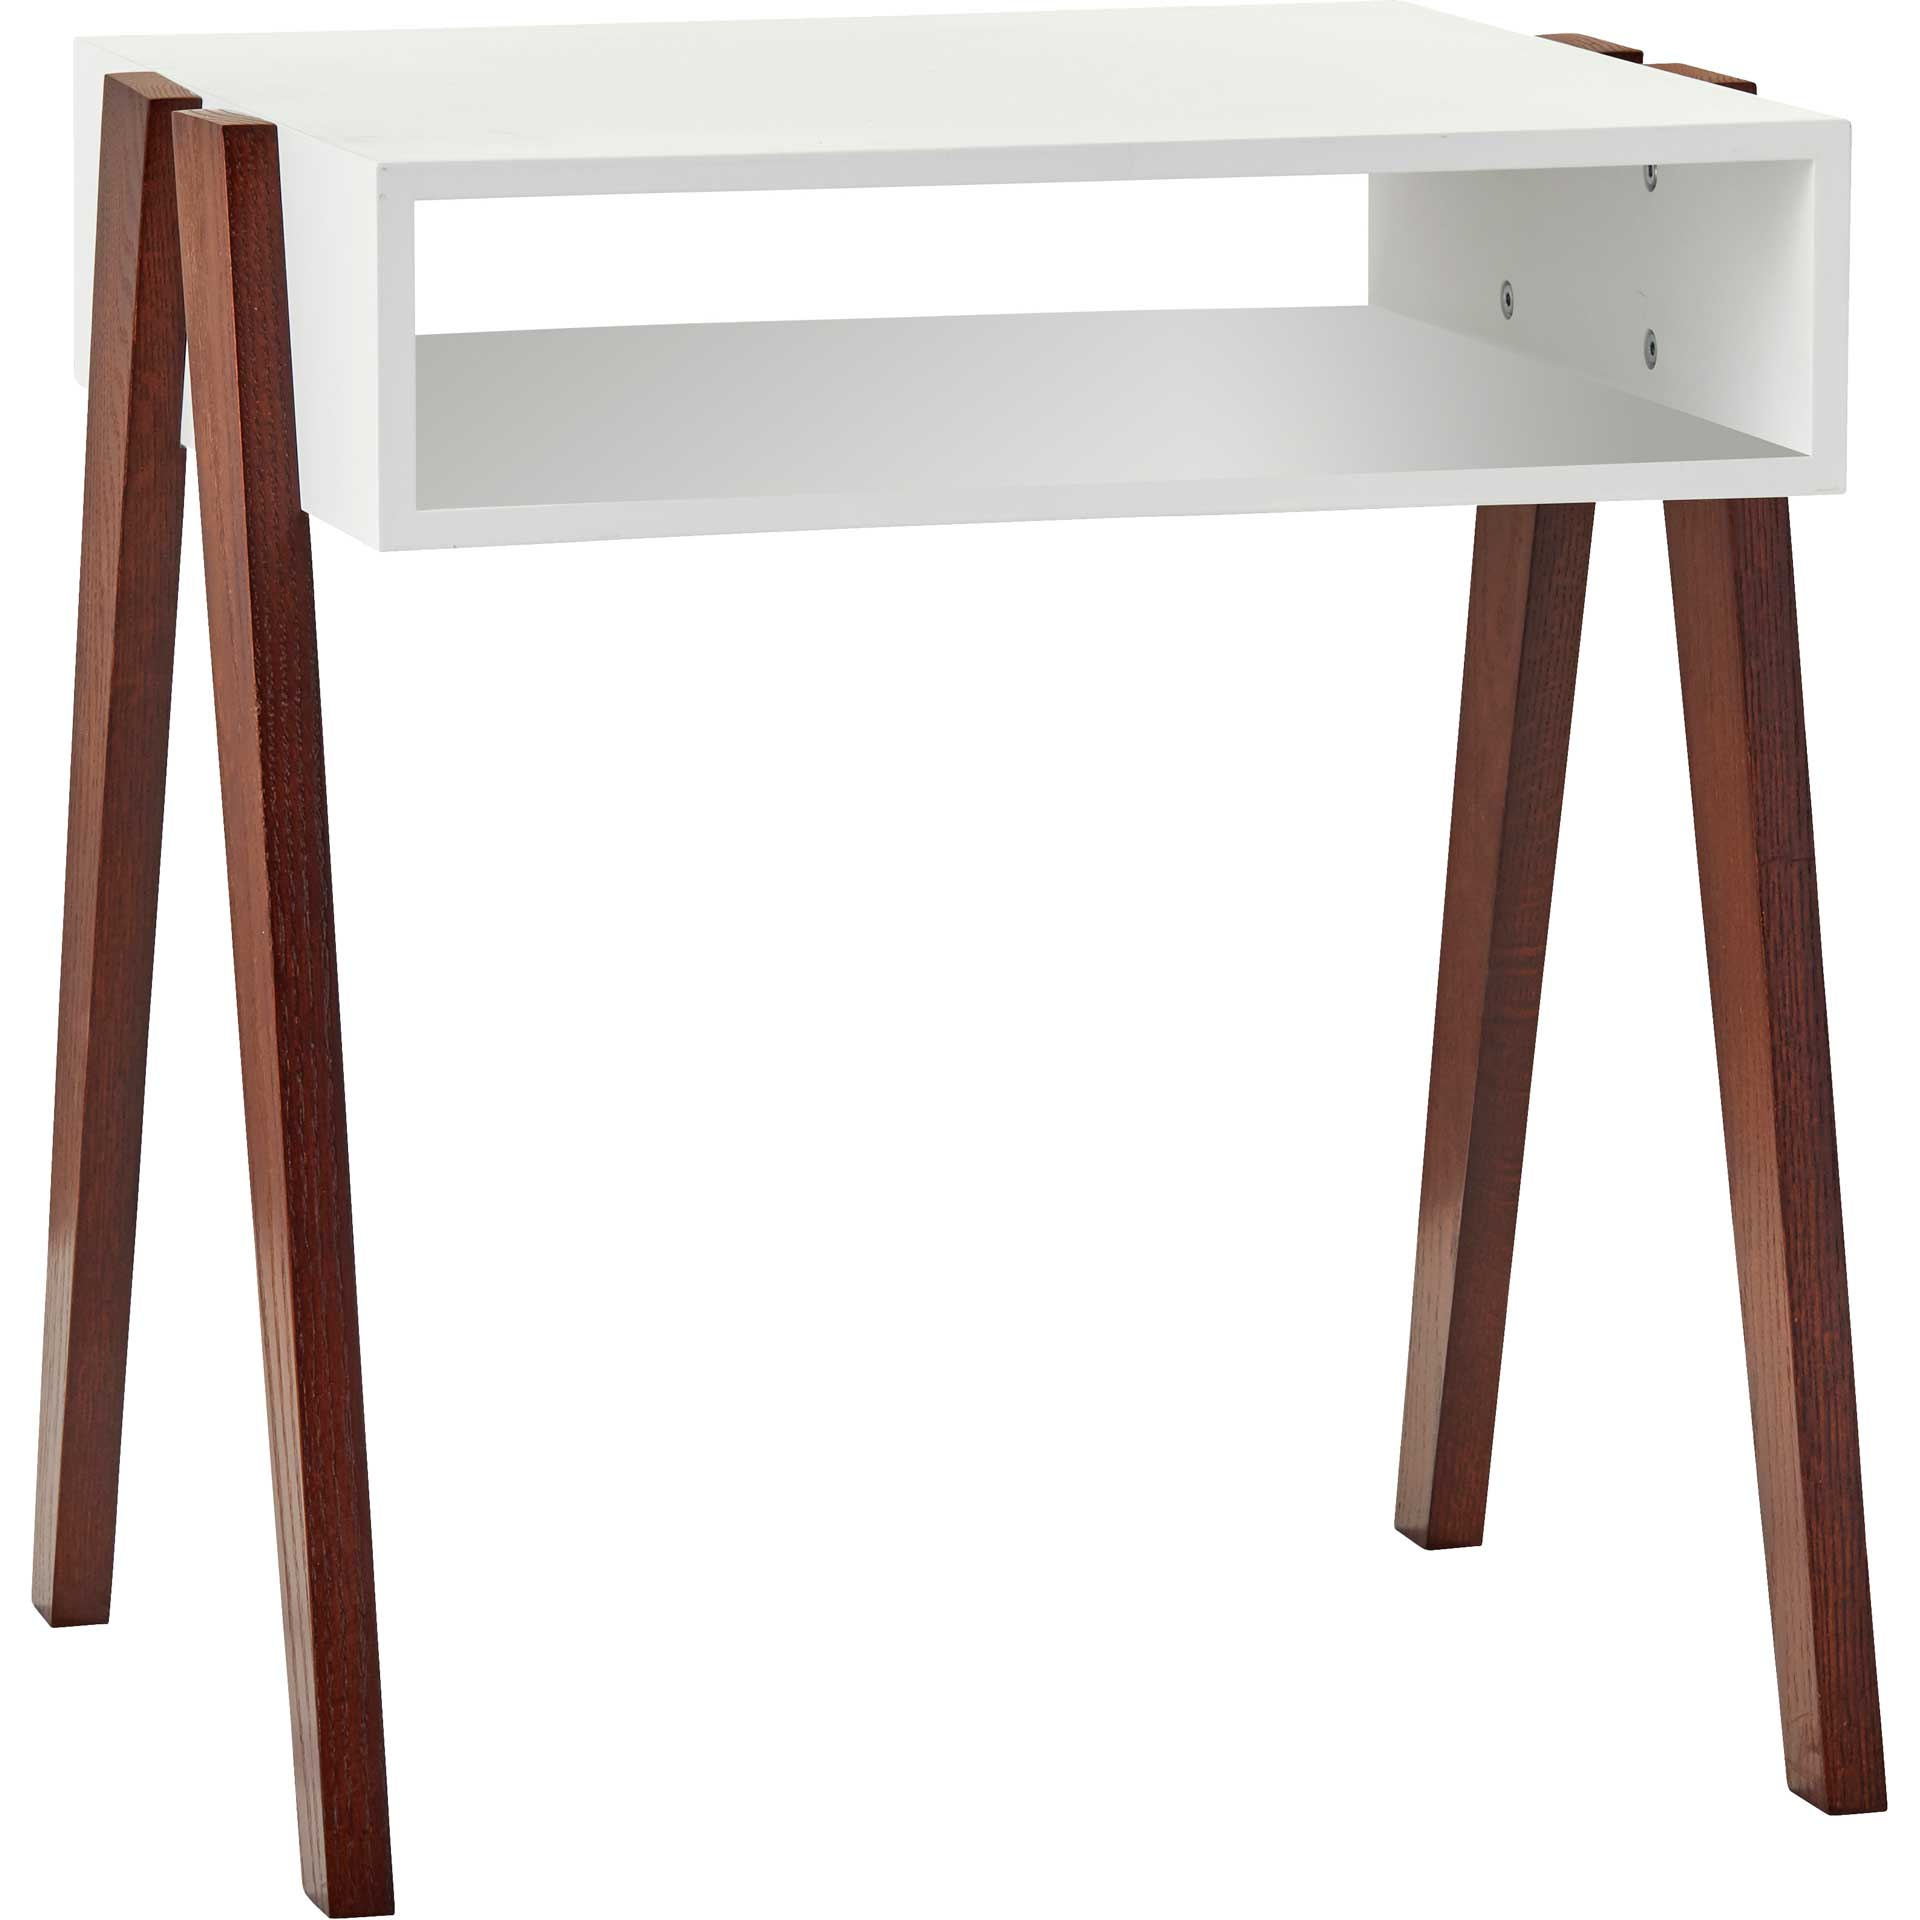 Laon End Table White/Walnut